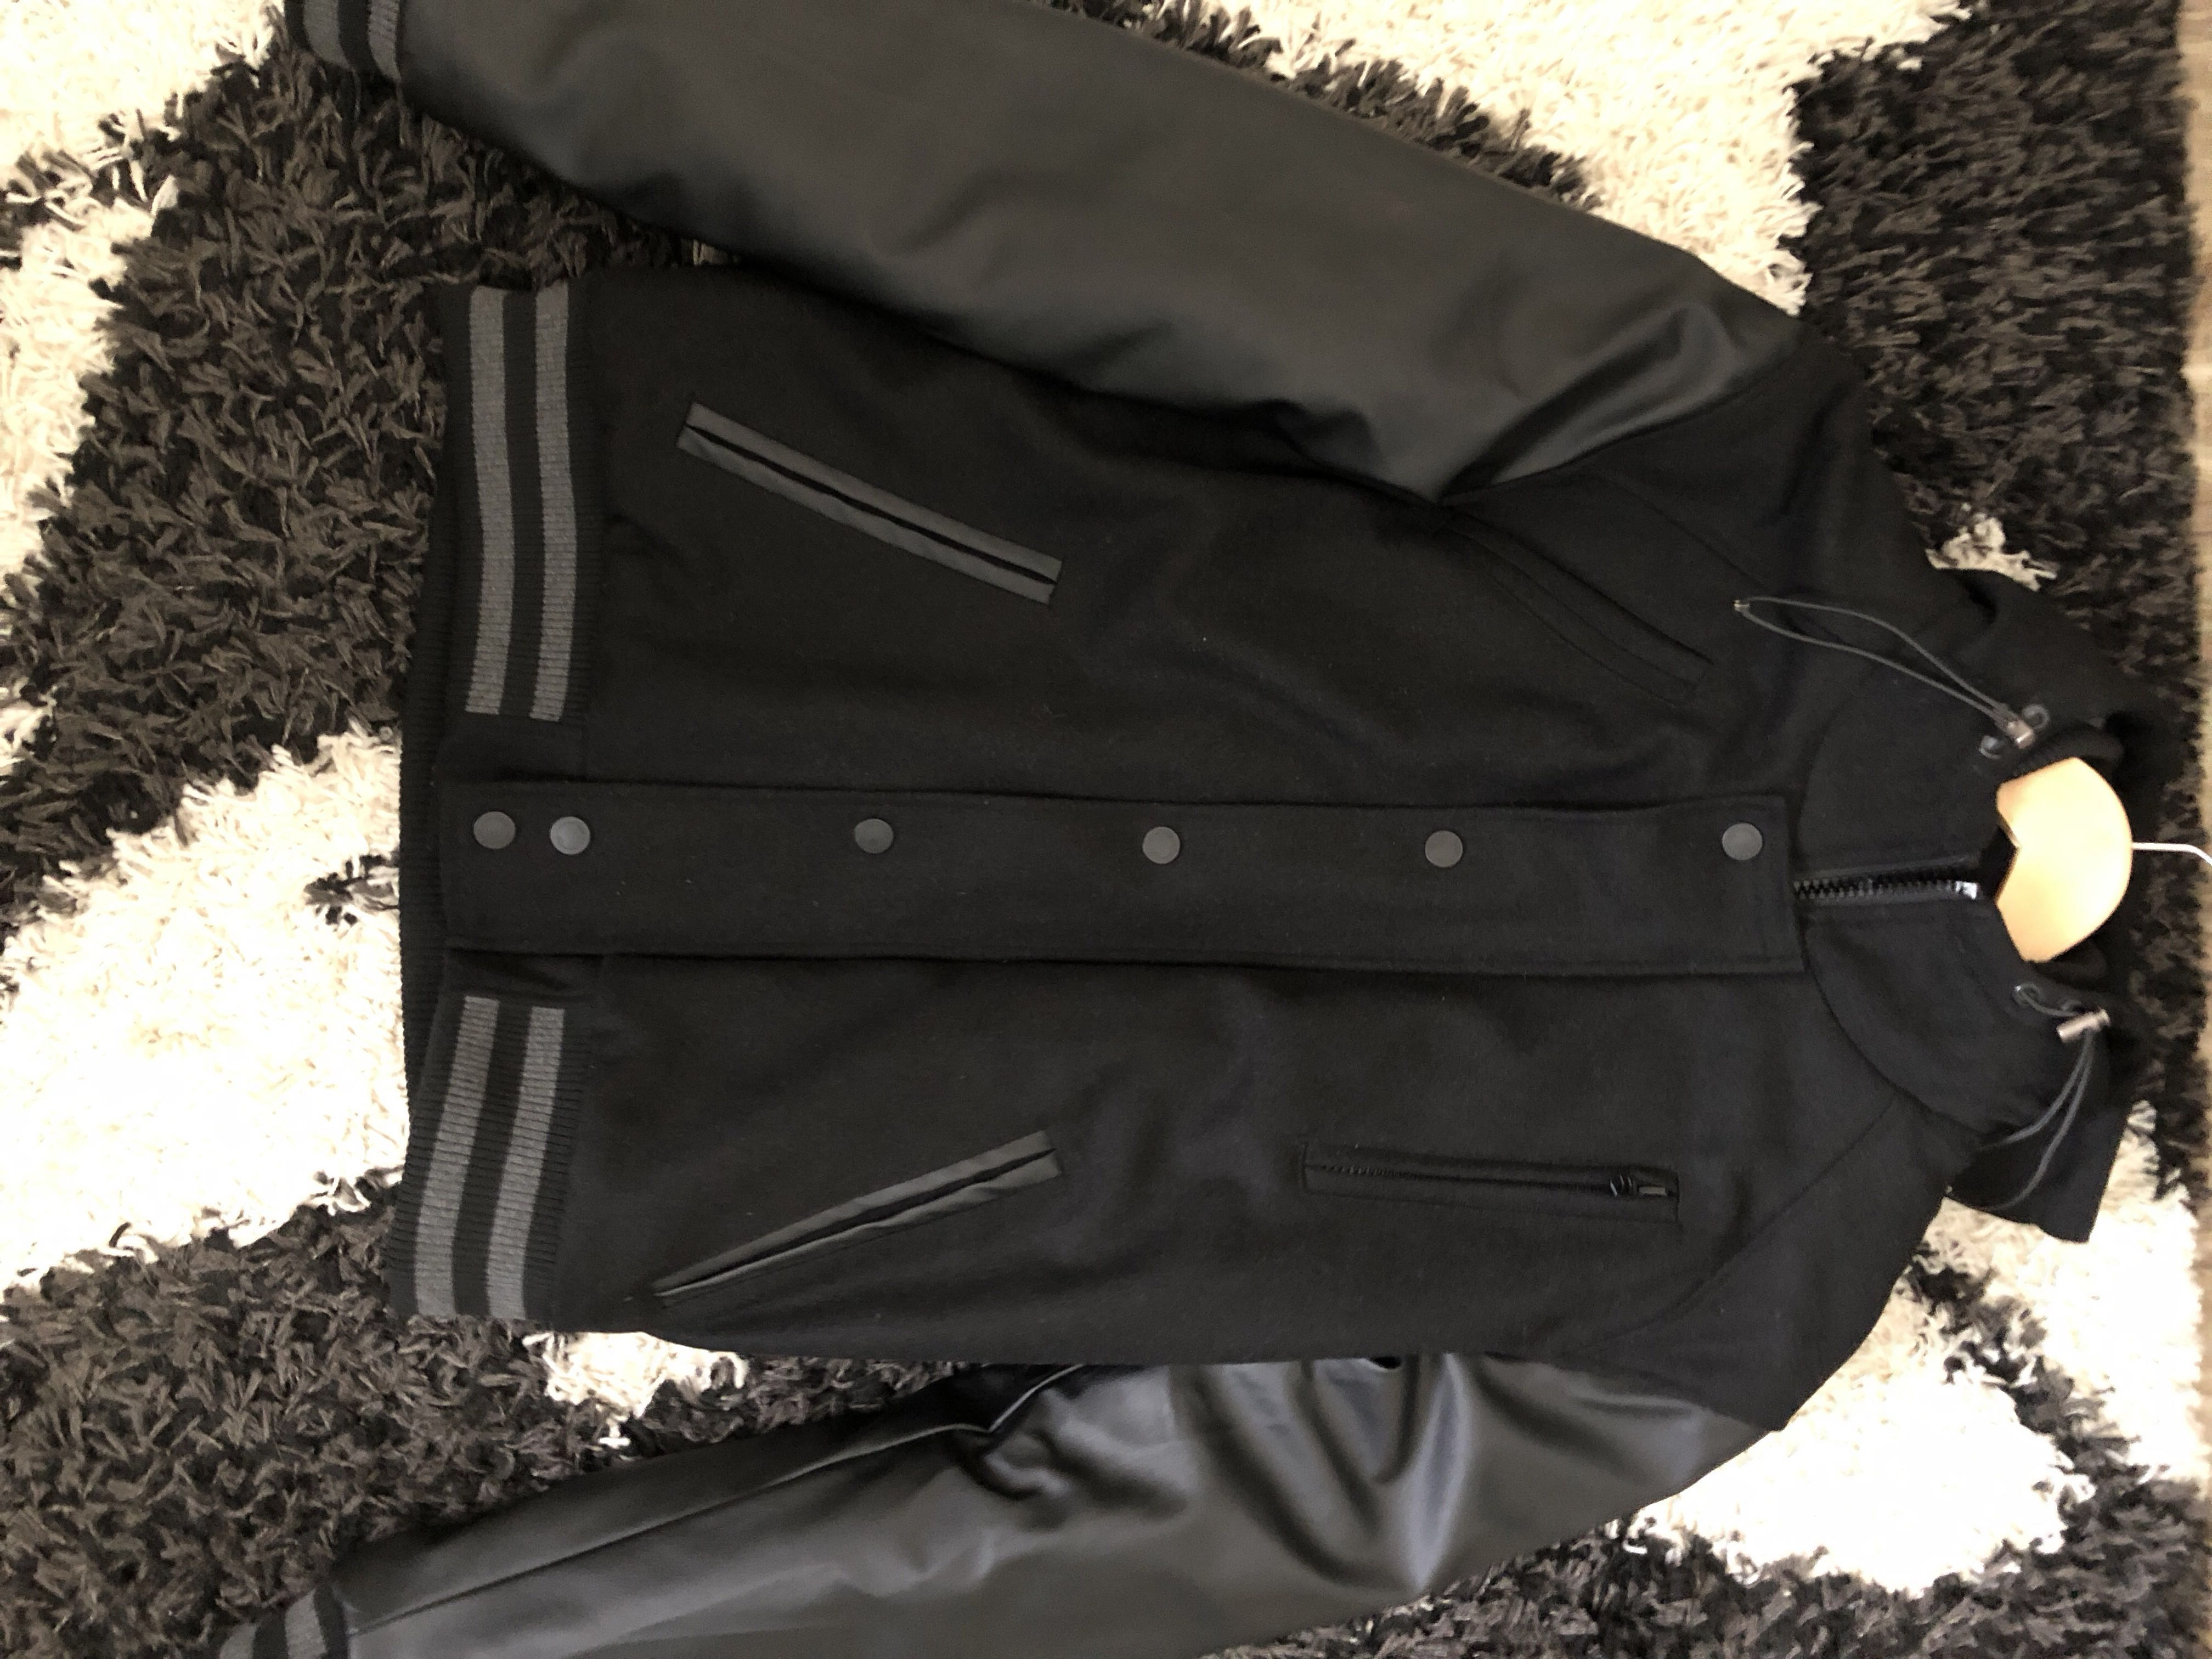 Goliath winter jacket